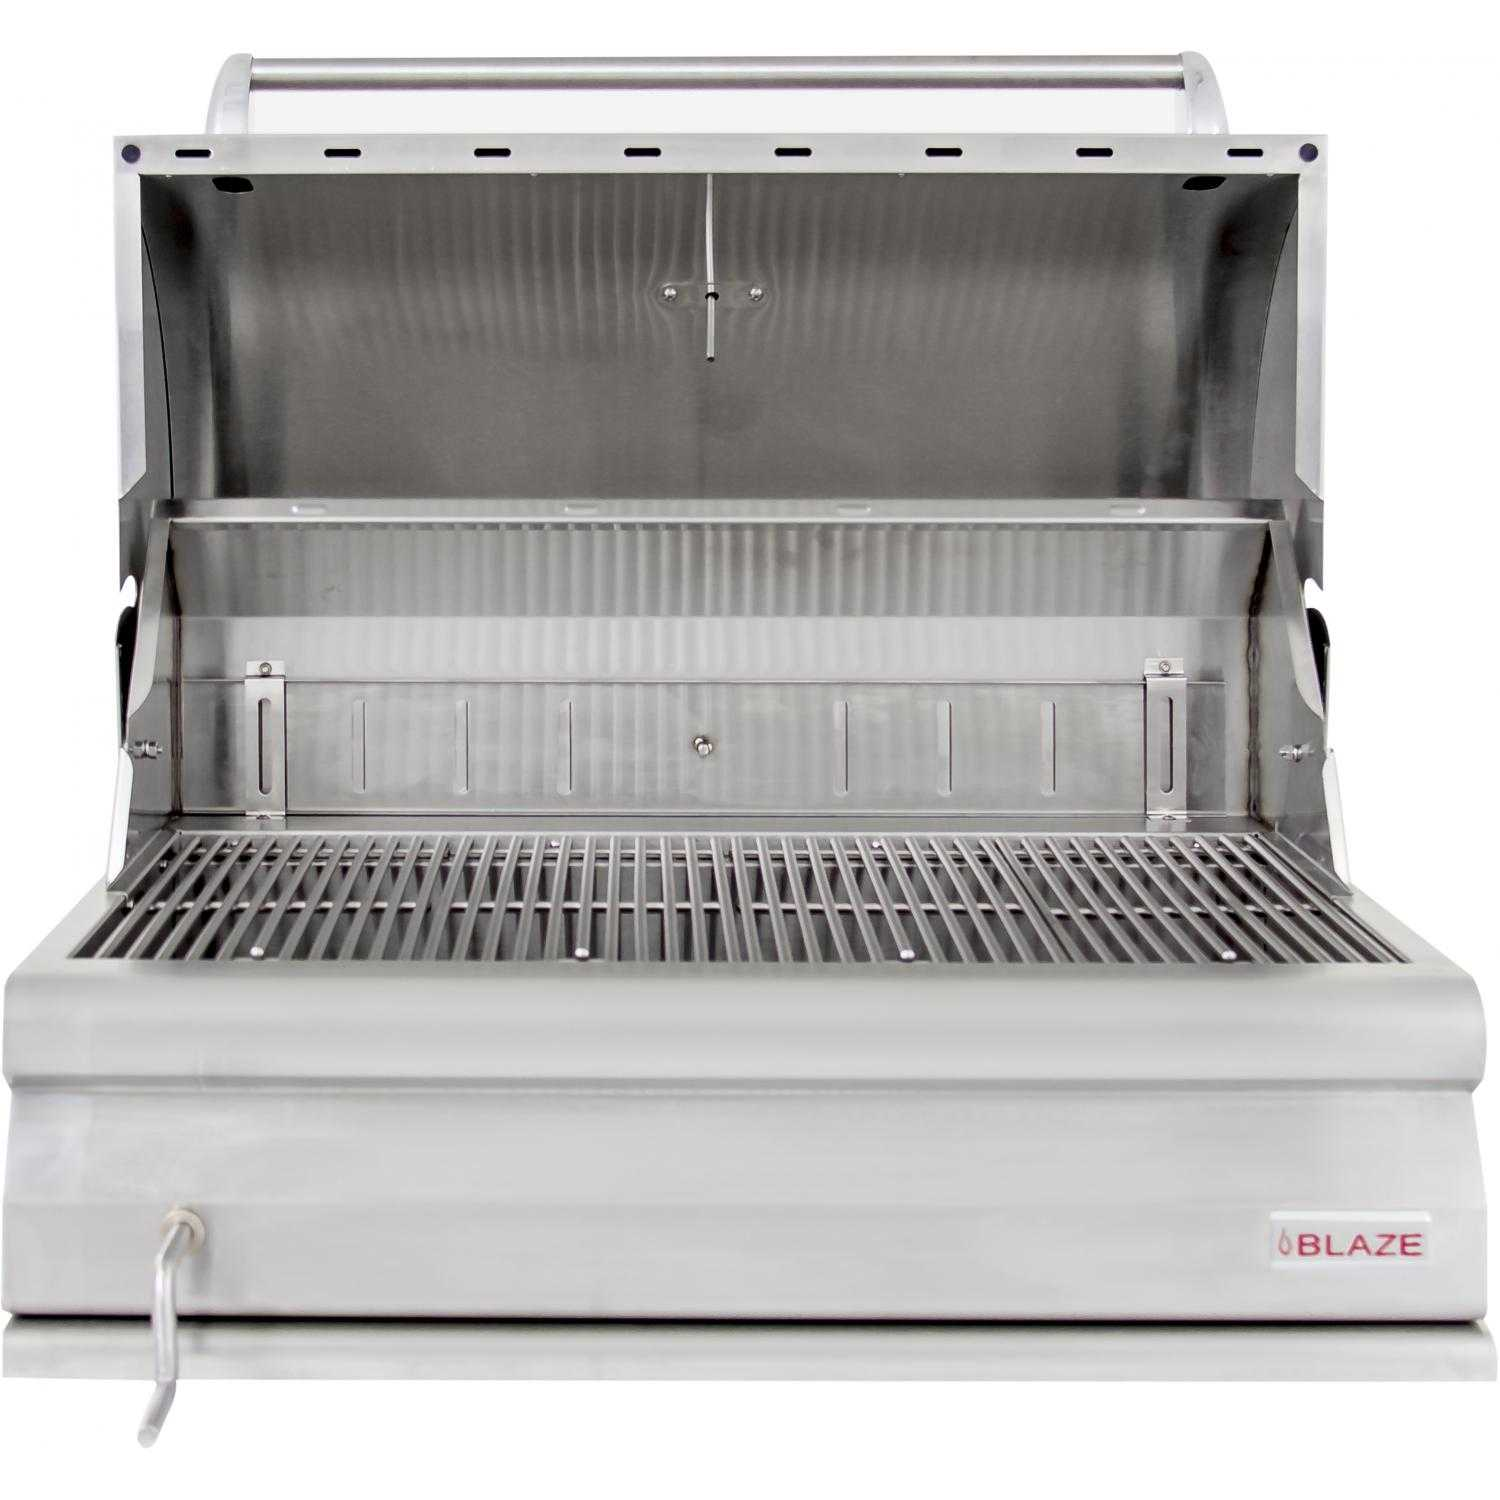 Blaze 32 Inch Built In Stainless Steel Charcoal Grill With